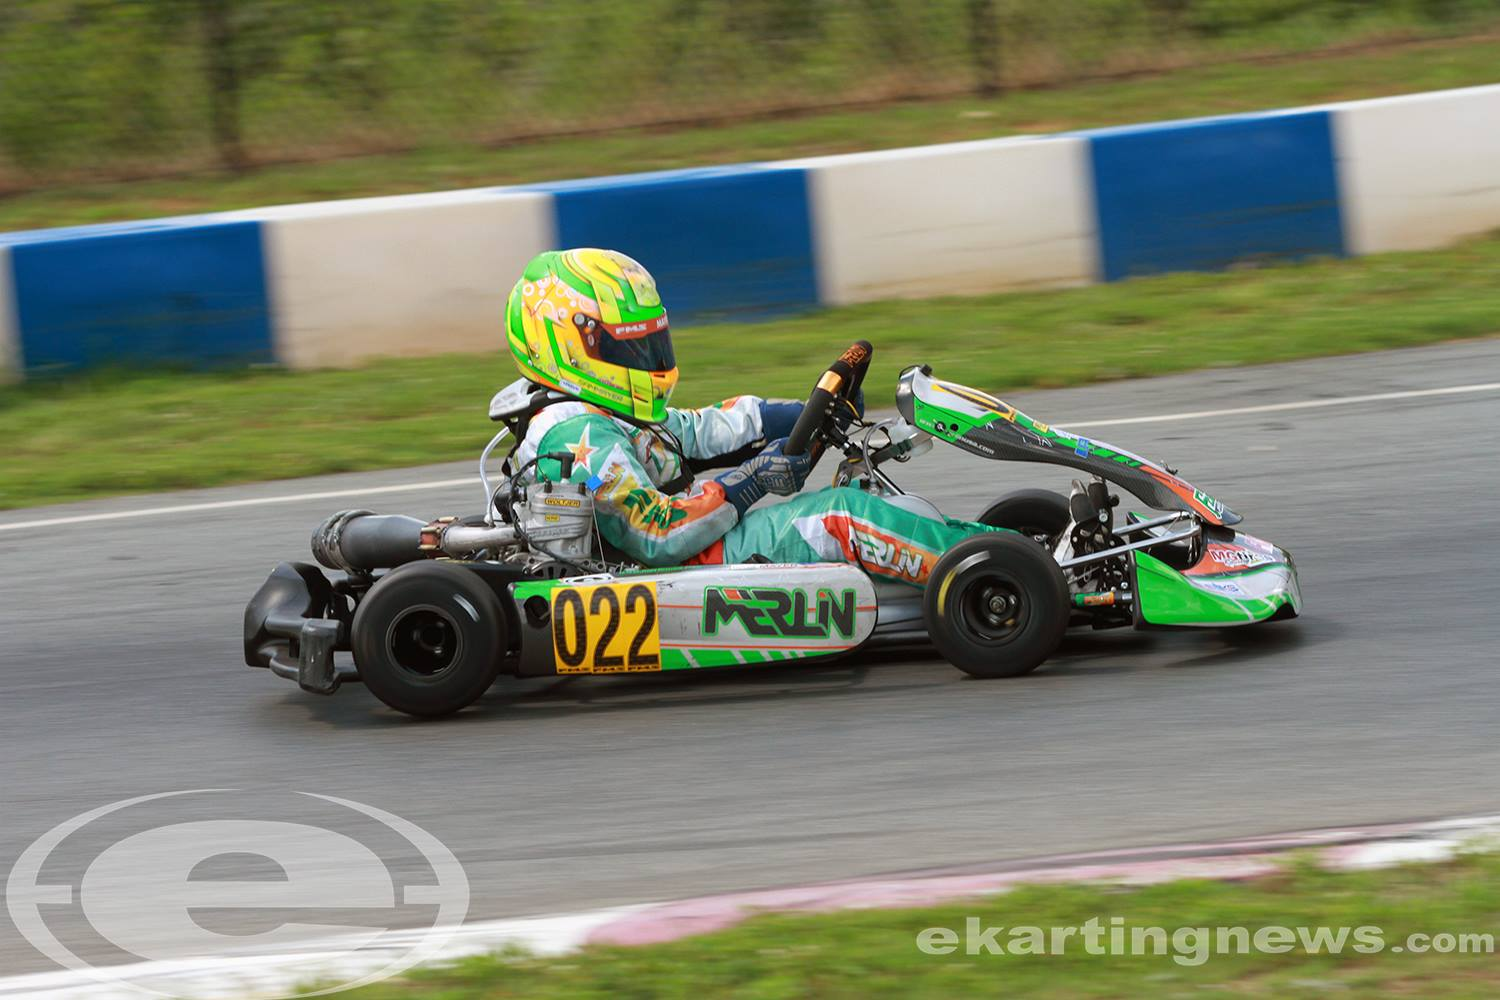 Merlin Racing Chassis Racks Up 5 Wins at USPKS Rounds 5-6 In Mooresville, NC